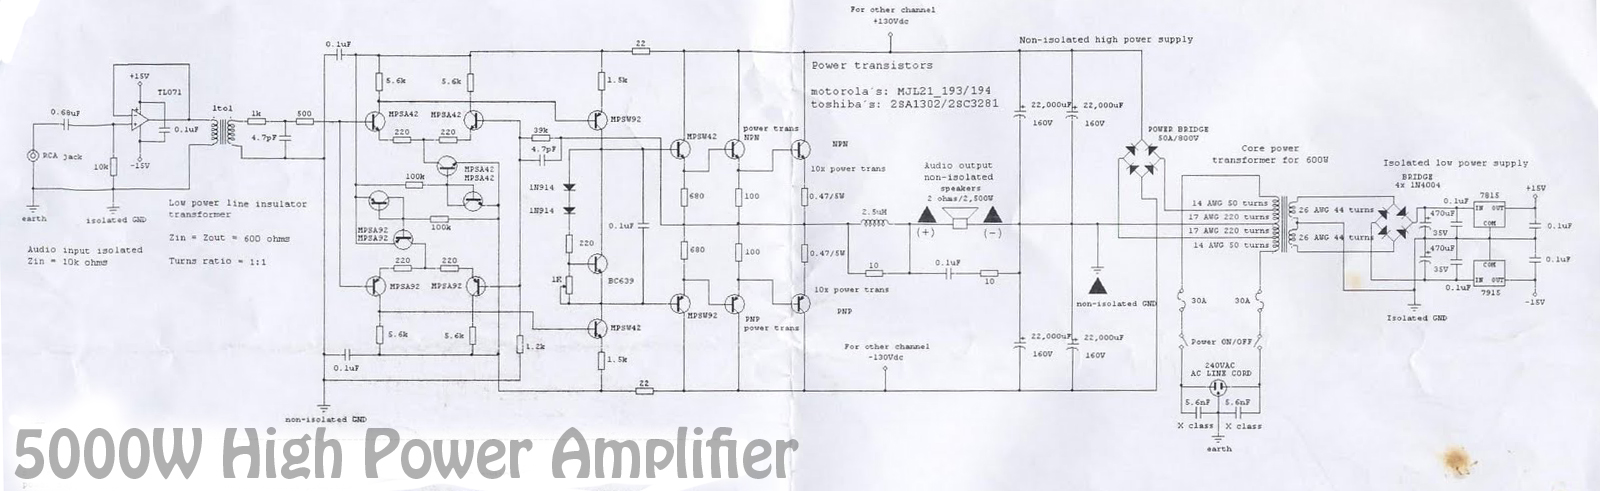 5000 Watts High Power Amplifier Schematic | Subwoofer Bass Amplifier